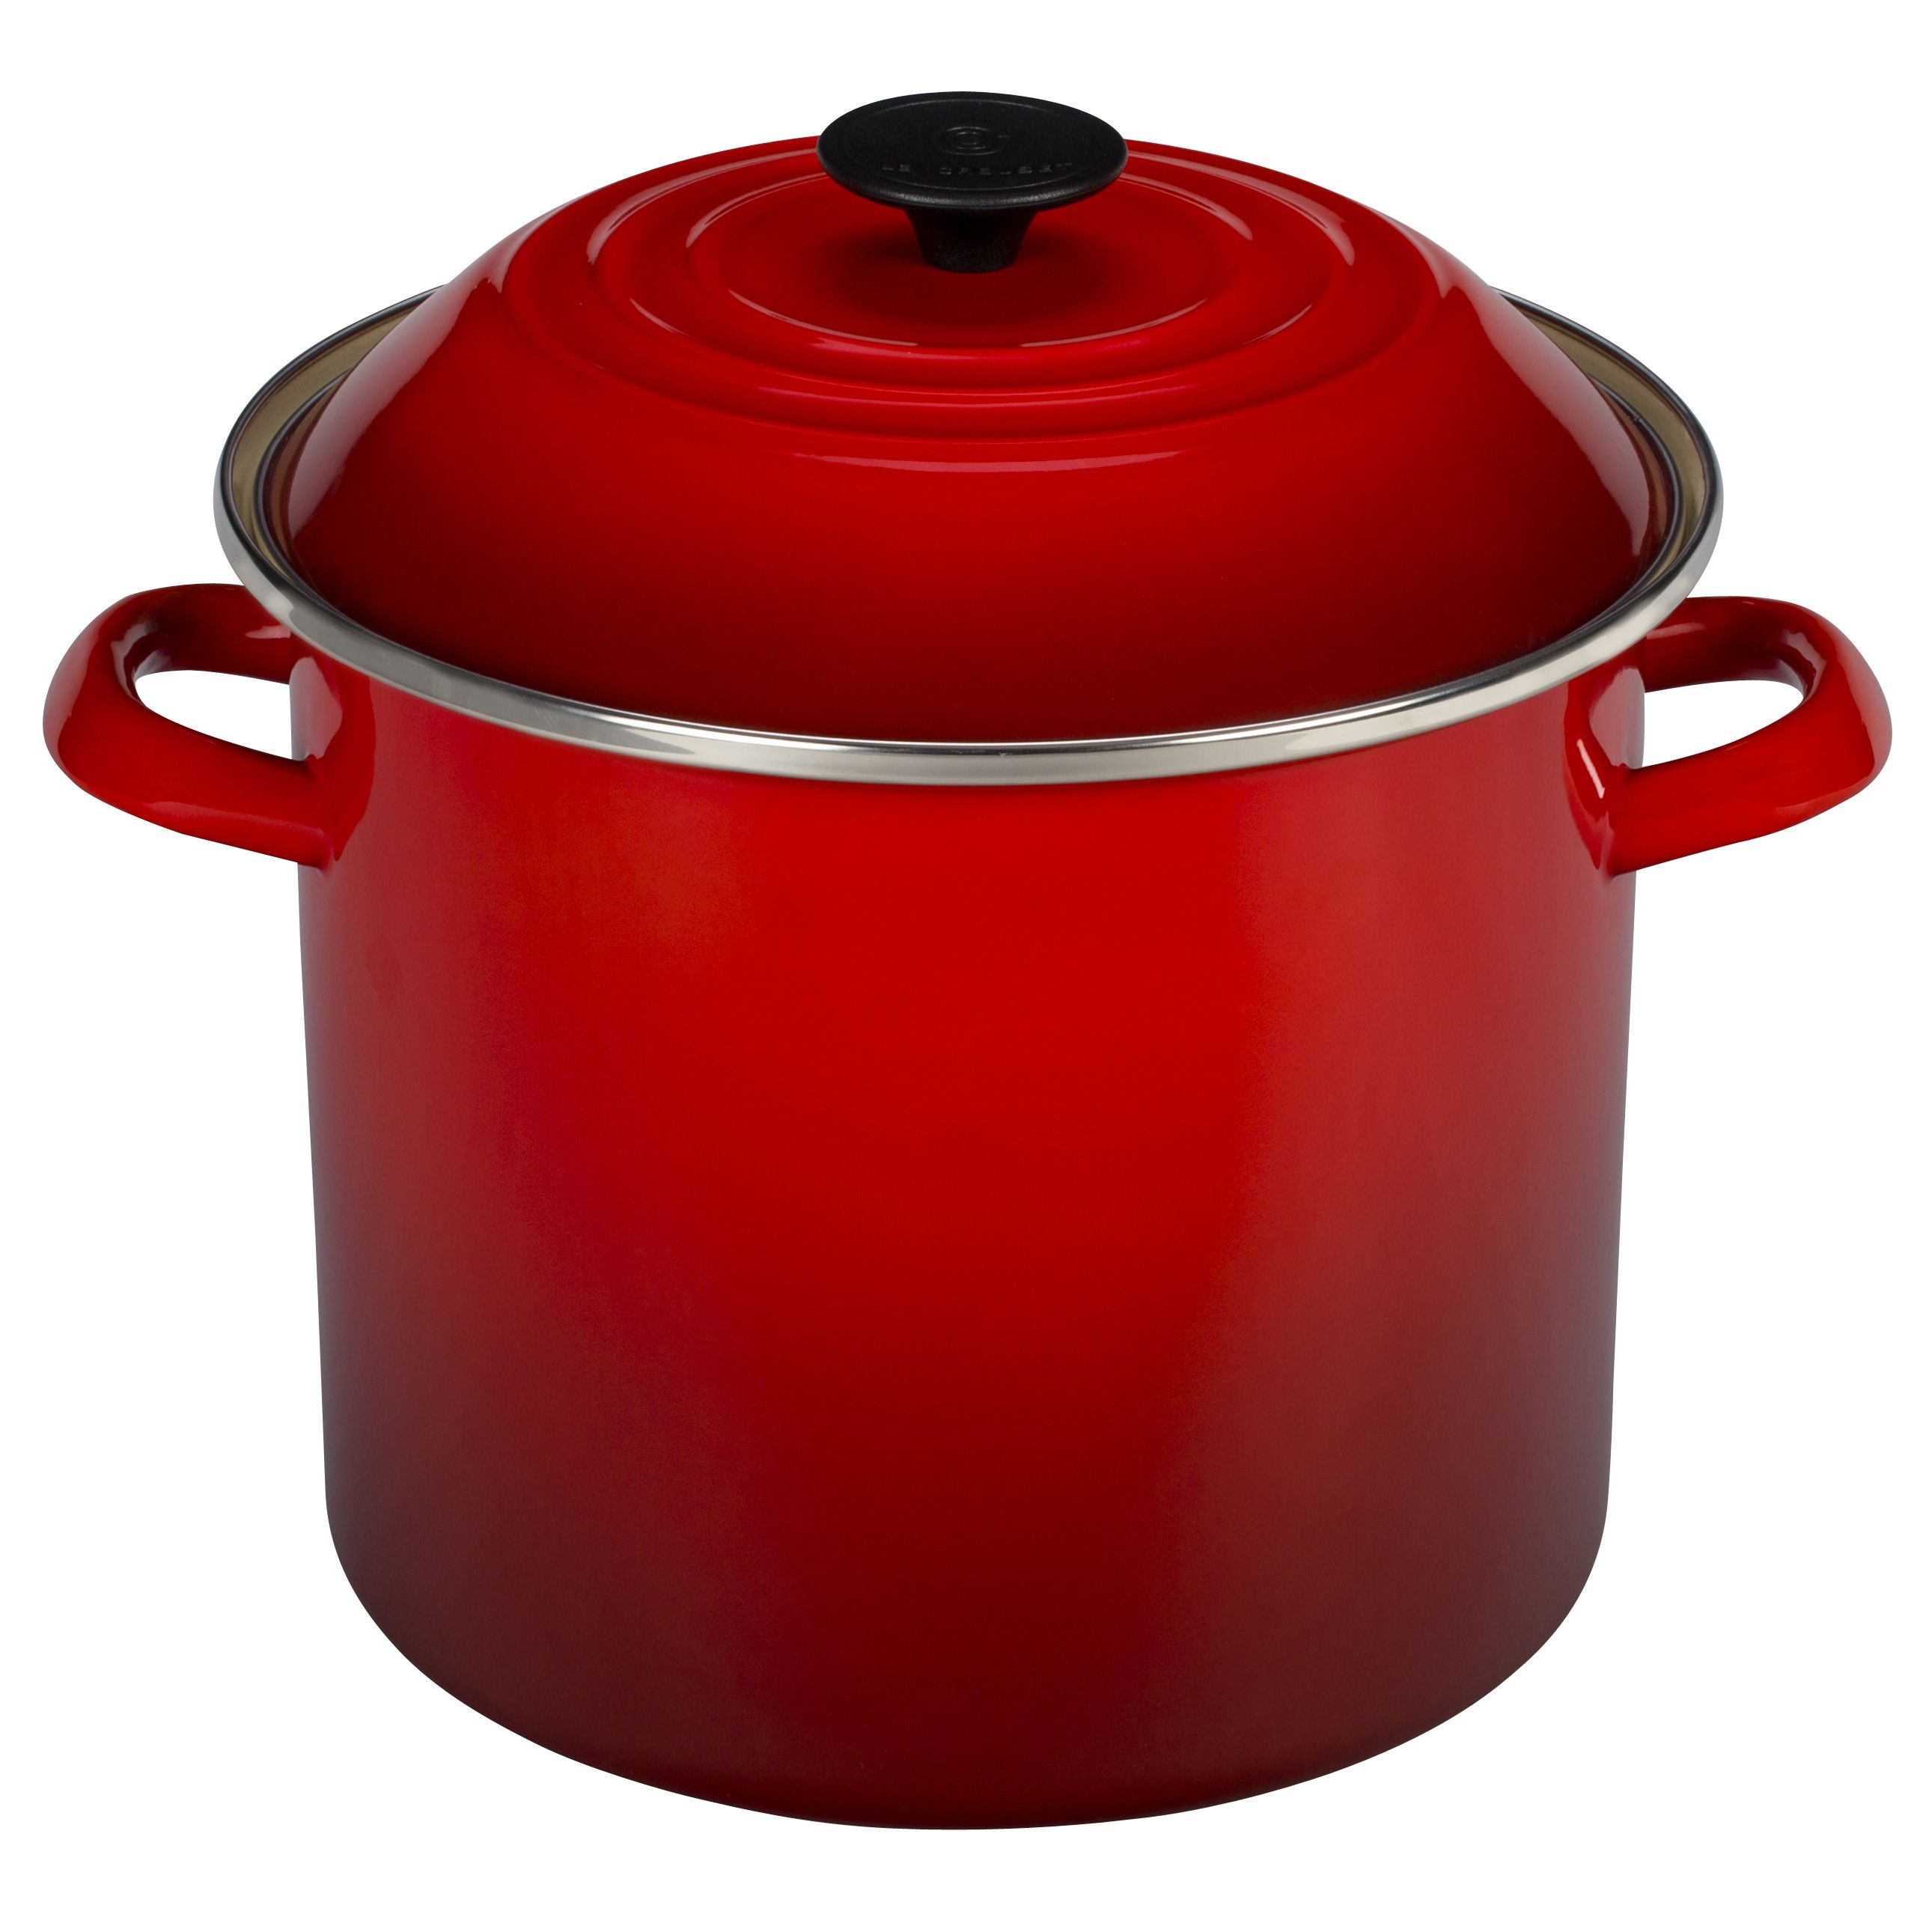 Le Creuset Enamel On Steel Stock Pot With Lid Steel Stock Le